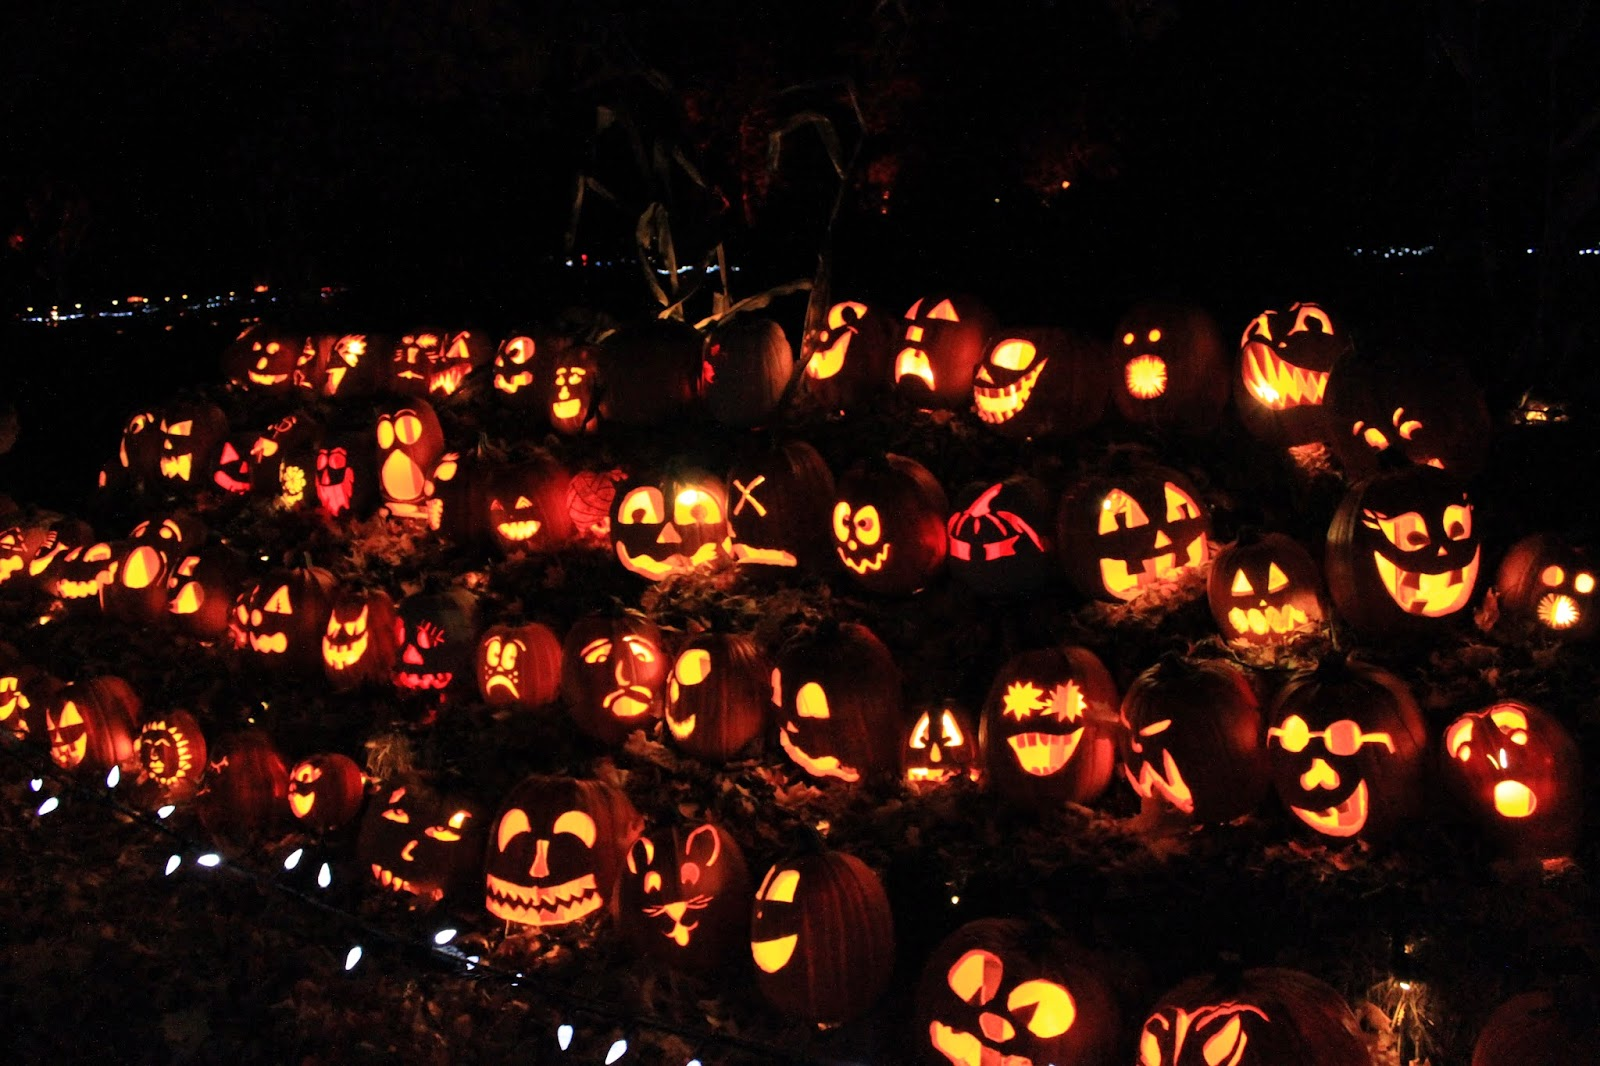 Night lights upper canada village - Pumpkin Inferno Upper Canada Village